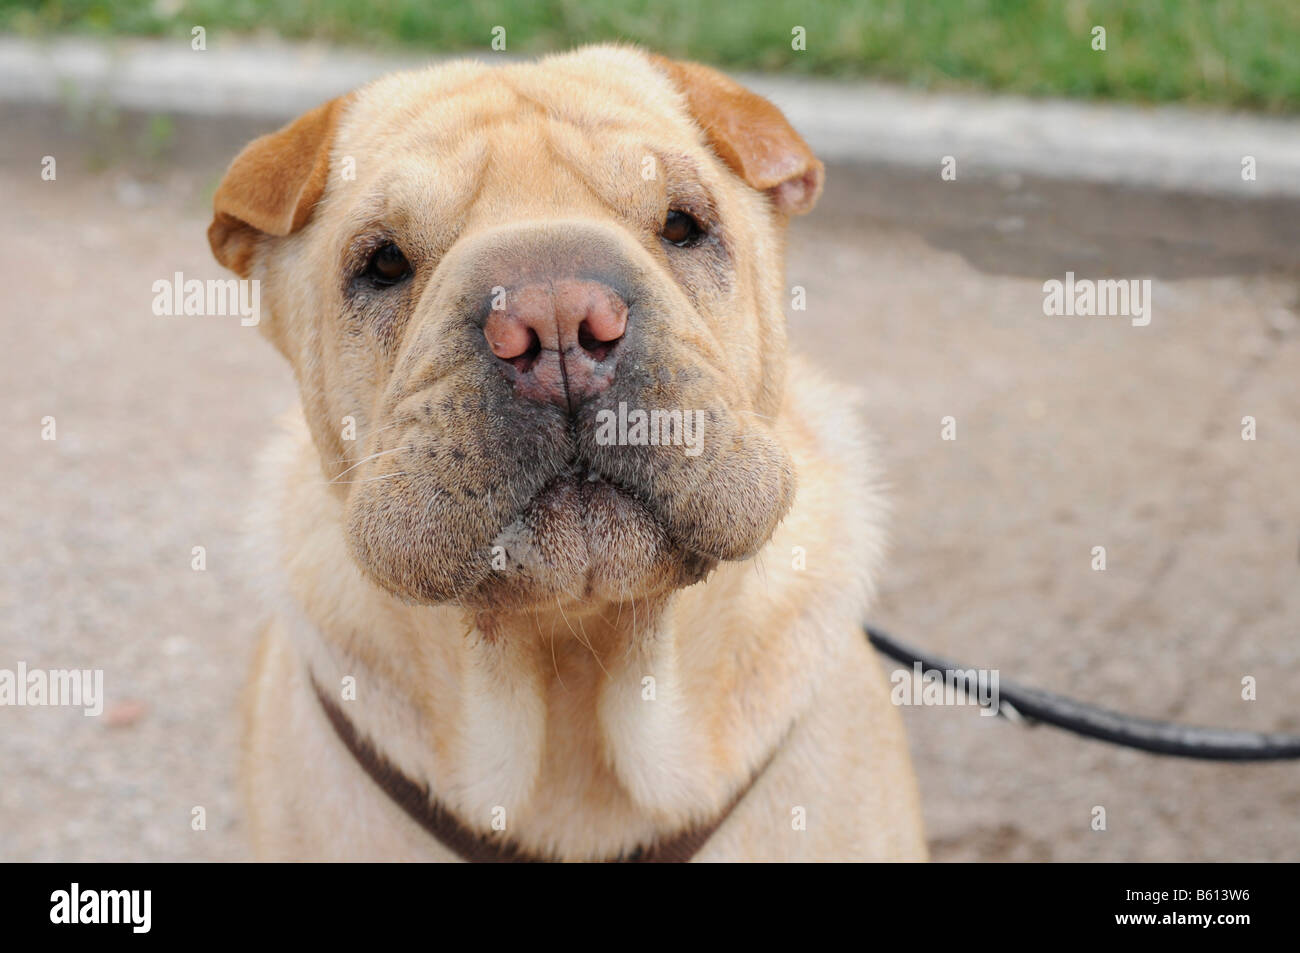 Shar Pei, old Chinese dog breed, put to use in hunting and as a watchdog, Stuttgart, Baden-Wuerttemberg - Stock Image